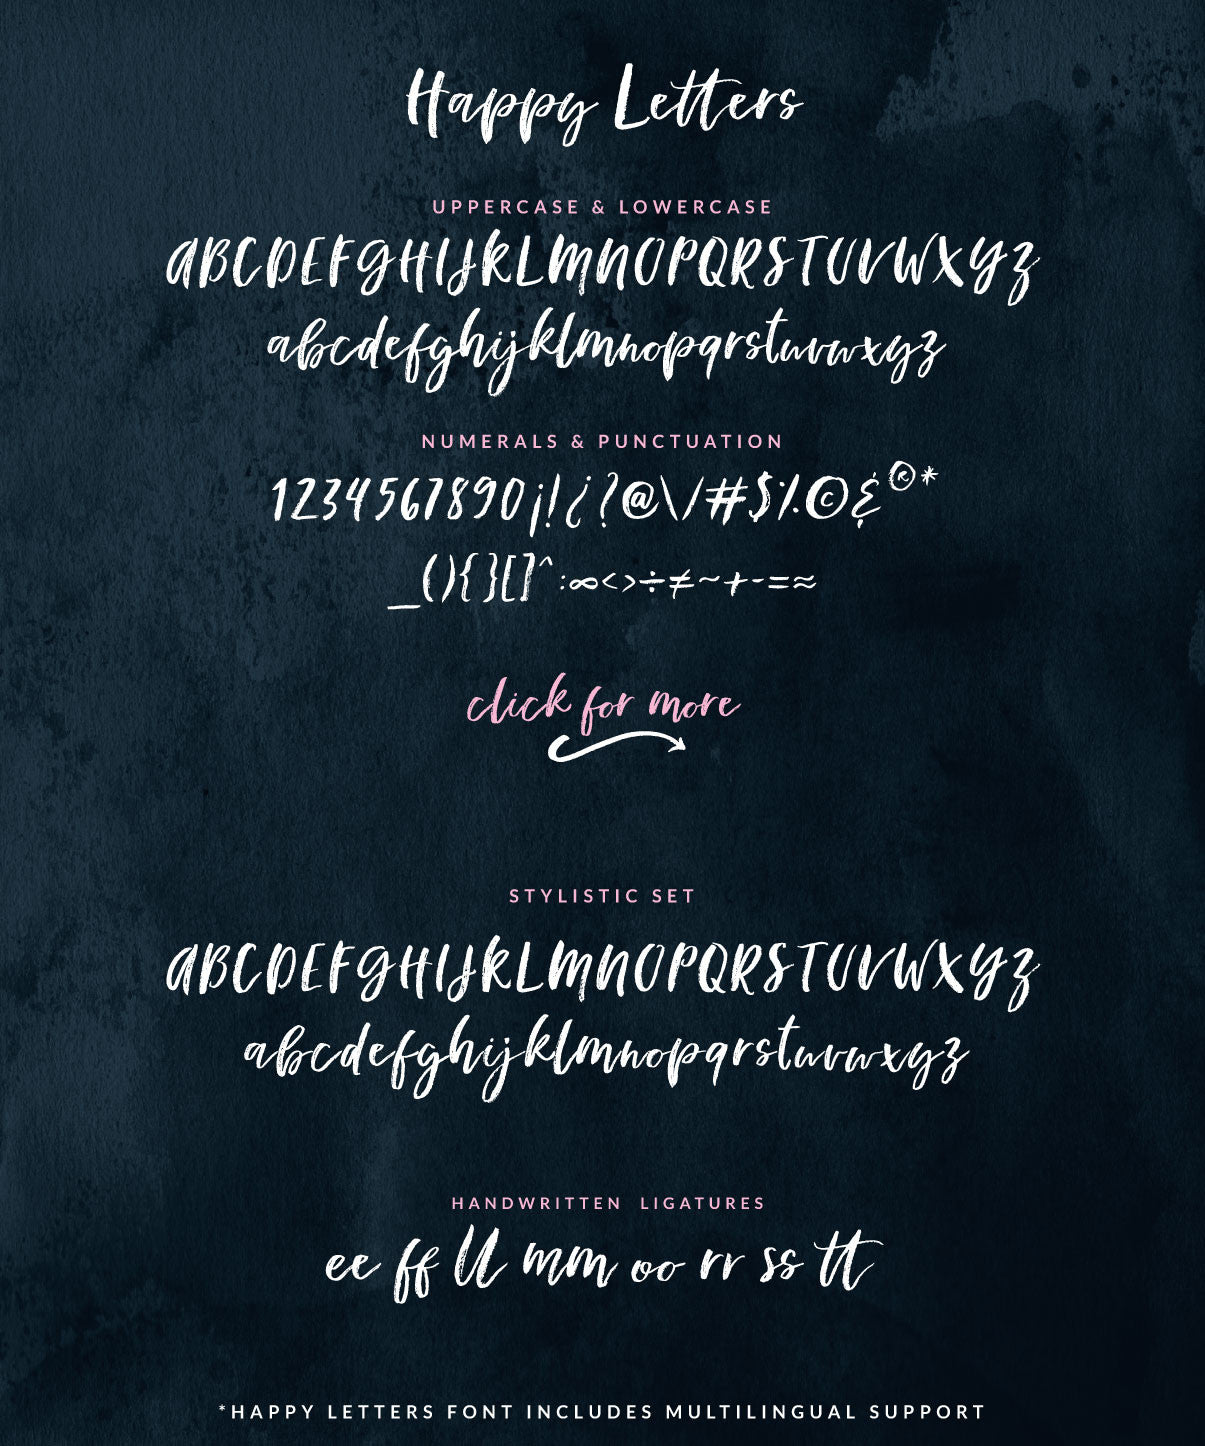 Happy Letters font - Birdesign